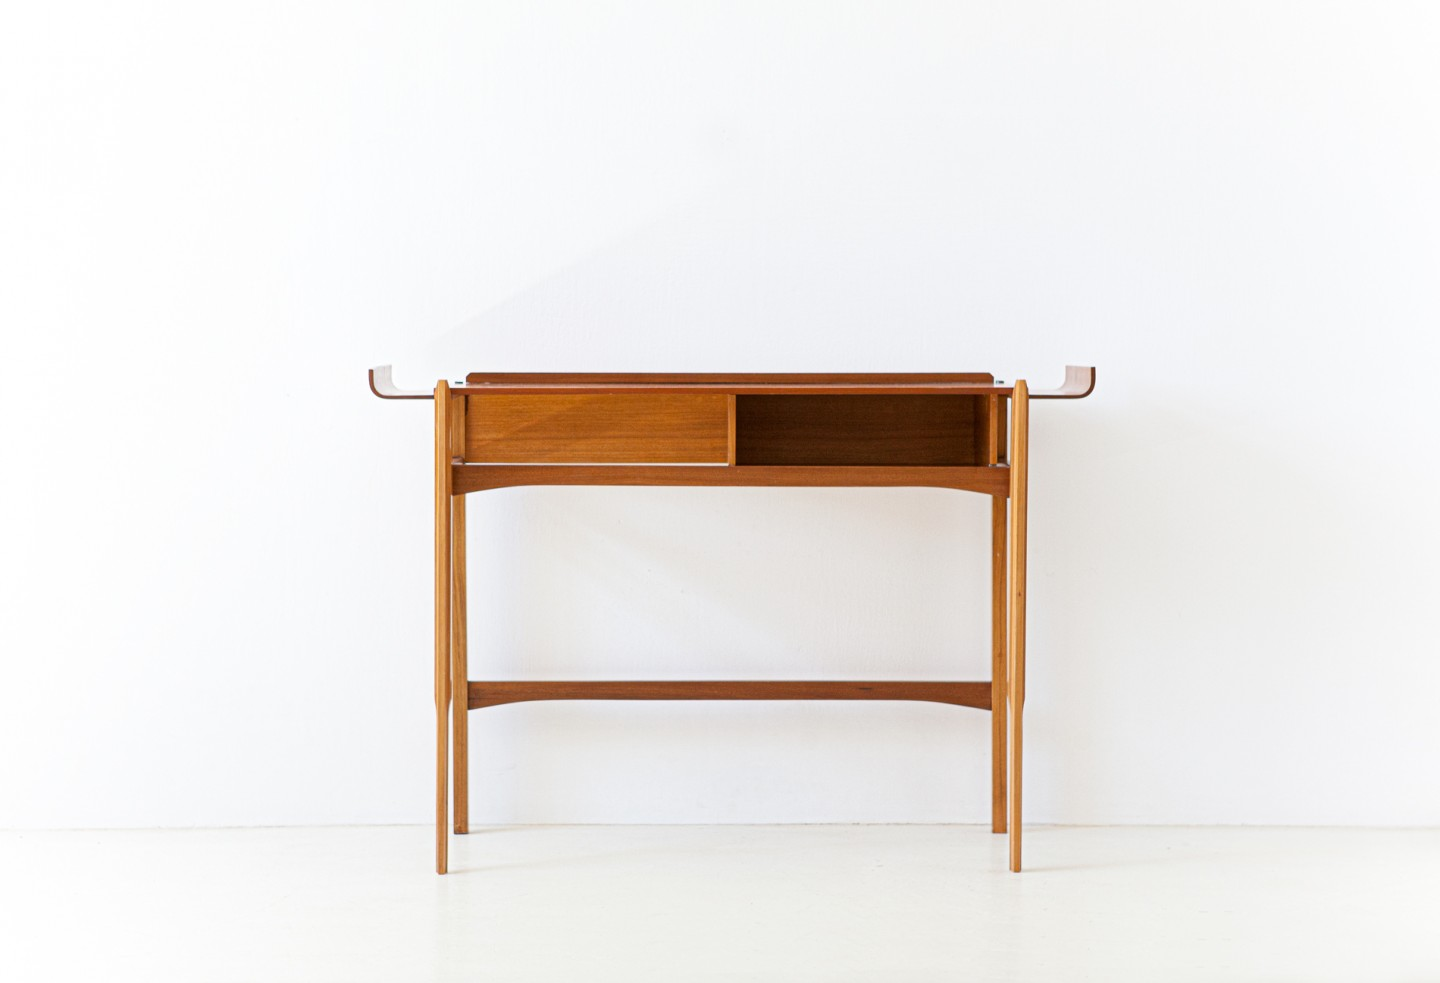 Italian Mid-Century Modern Teak Console Table , 1950s OF106 – not available